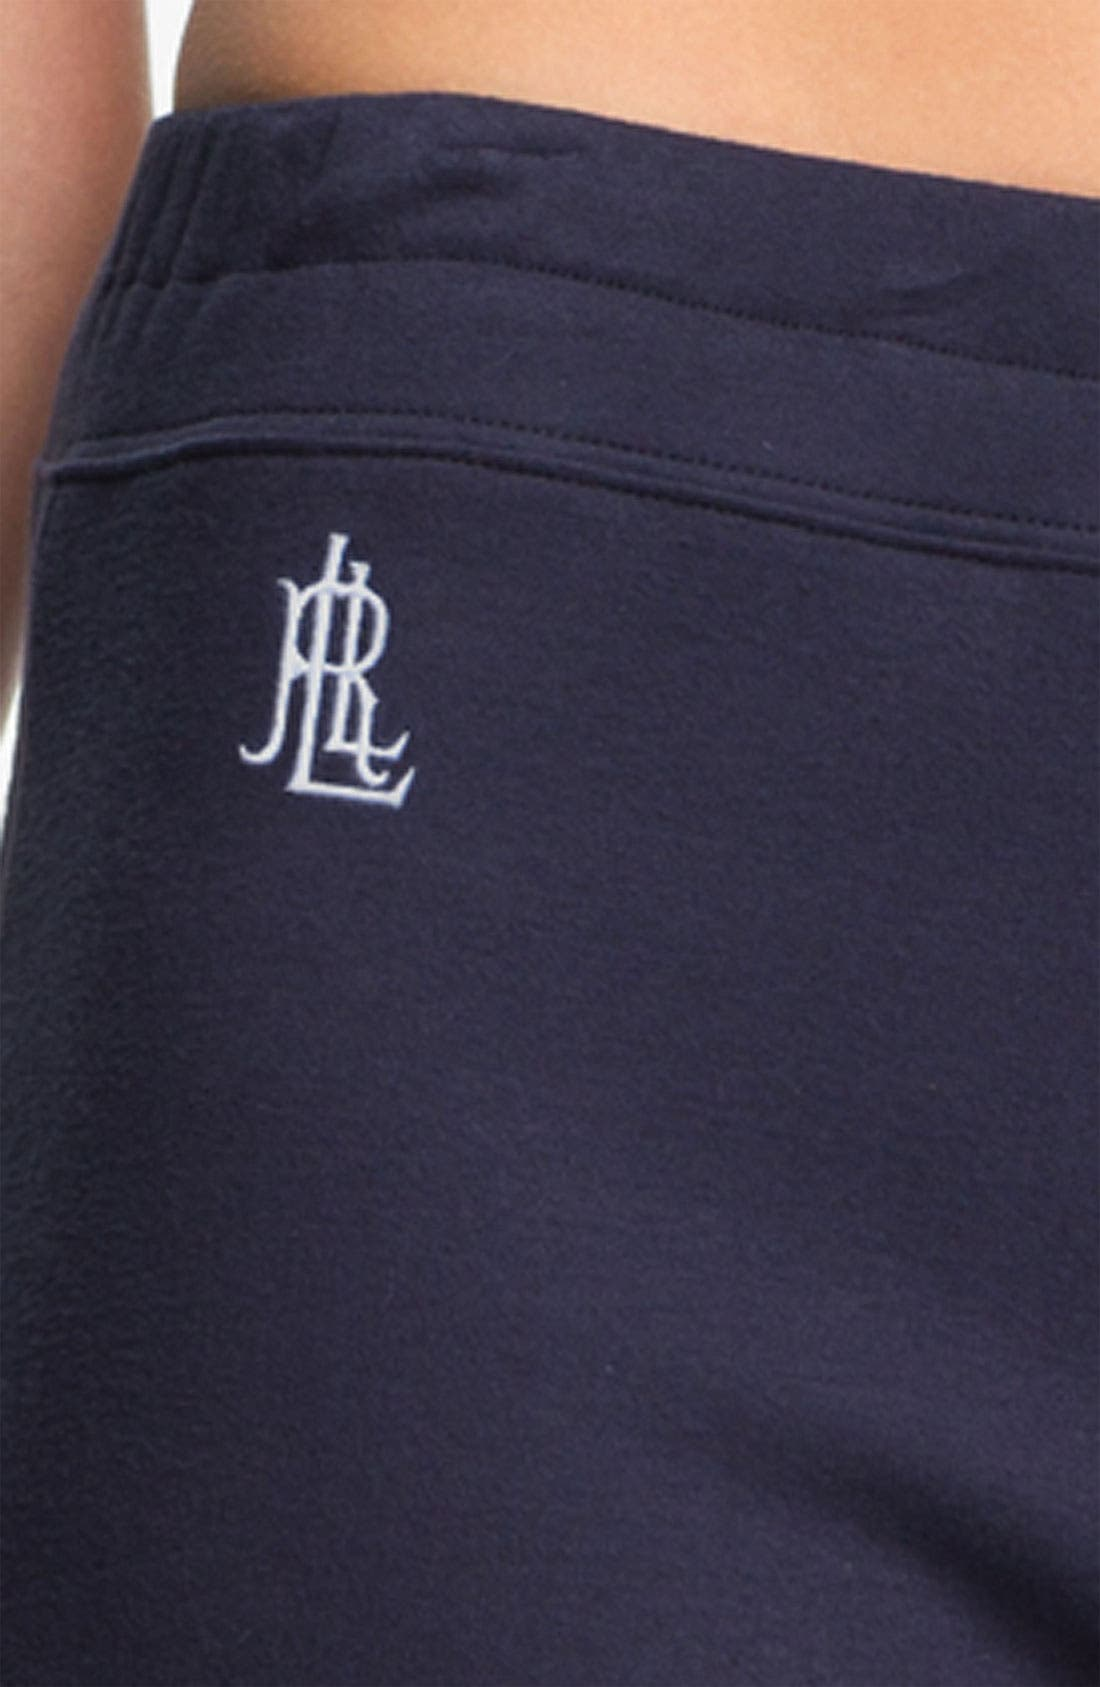 Alternate Image 3  - Lauren Ralph Lauren Sleepwear Lounge Pants